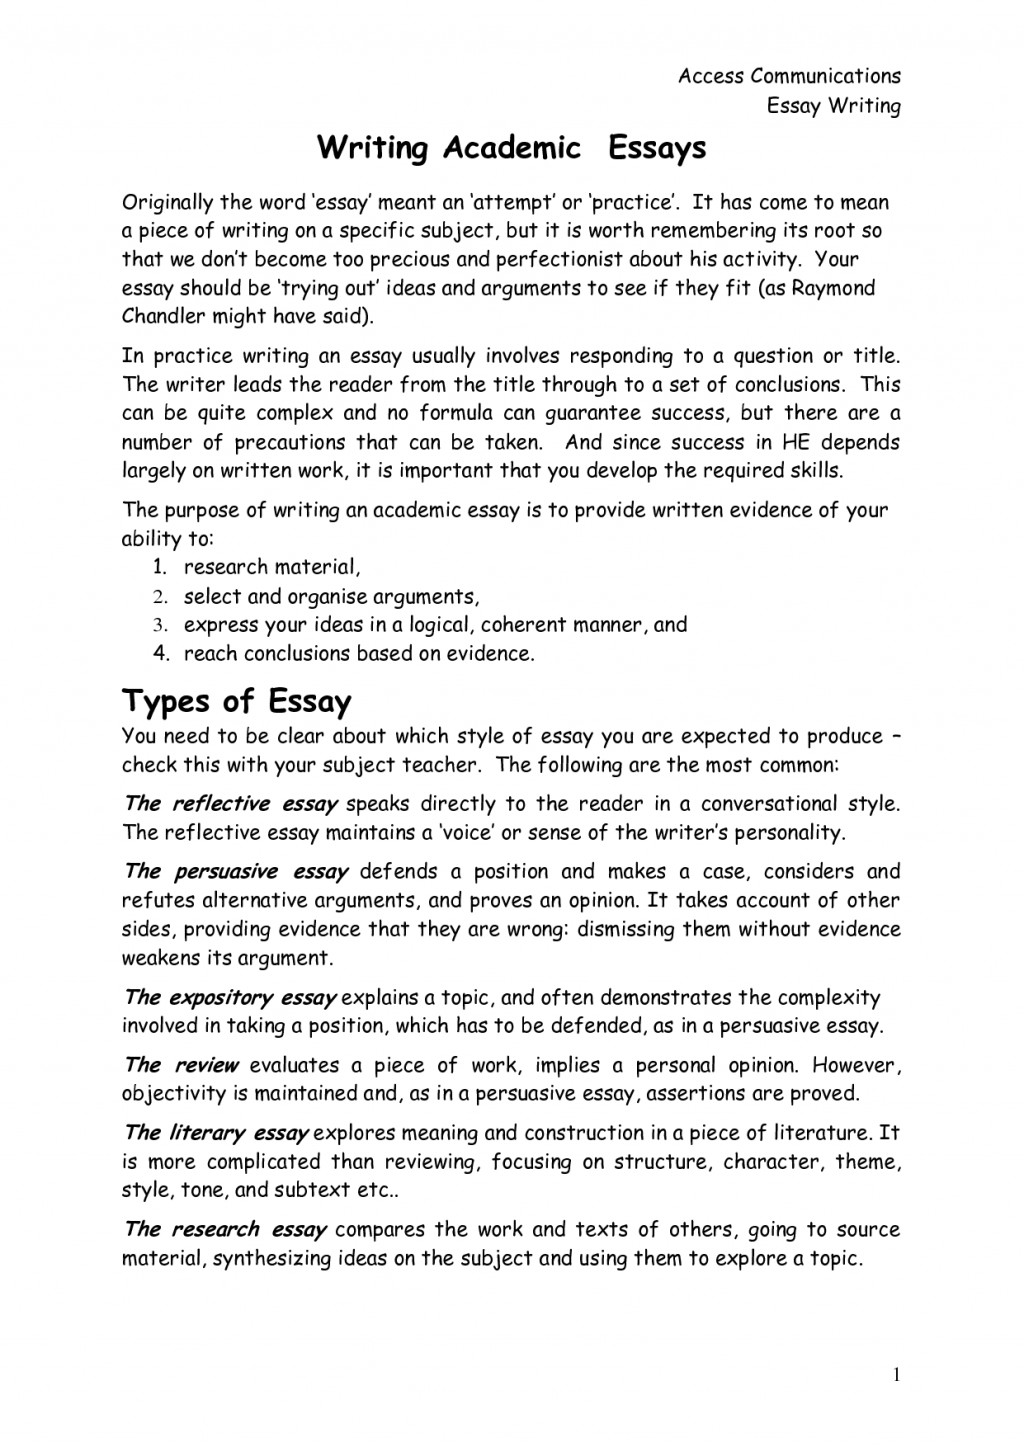 016 Reflective Essay On Academic Writings Beautiful Examples English Pdf For Middle School Writing Class Large